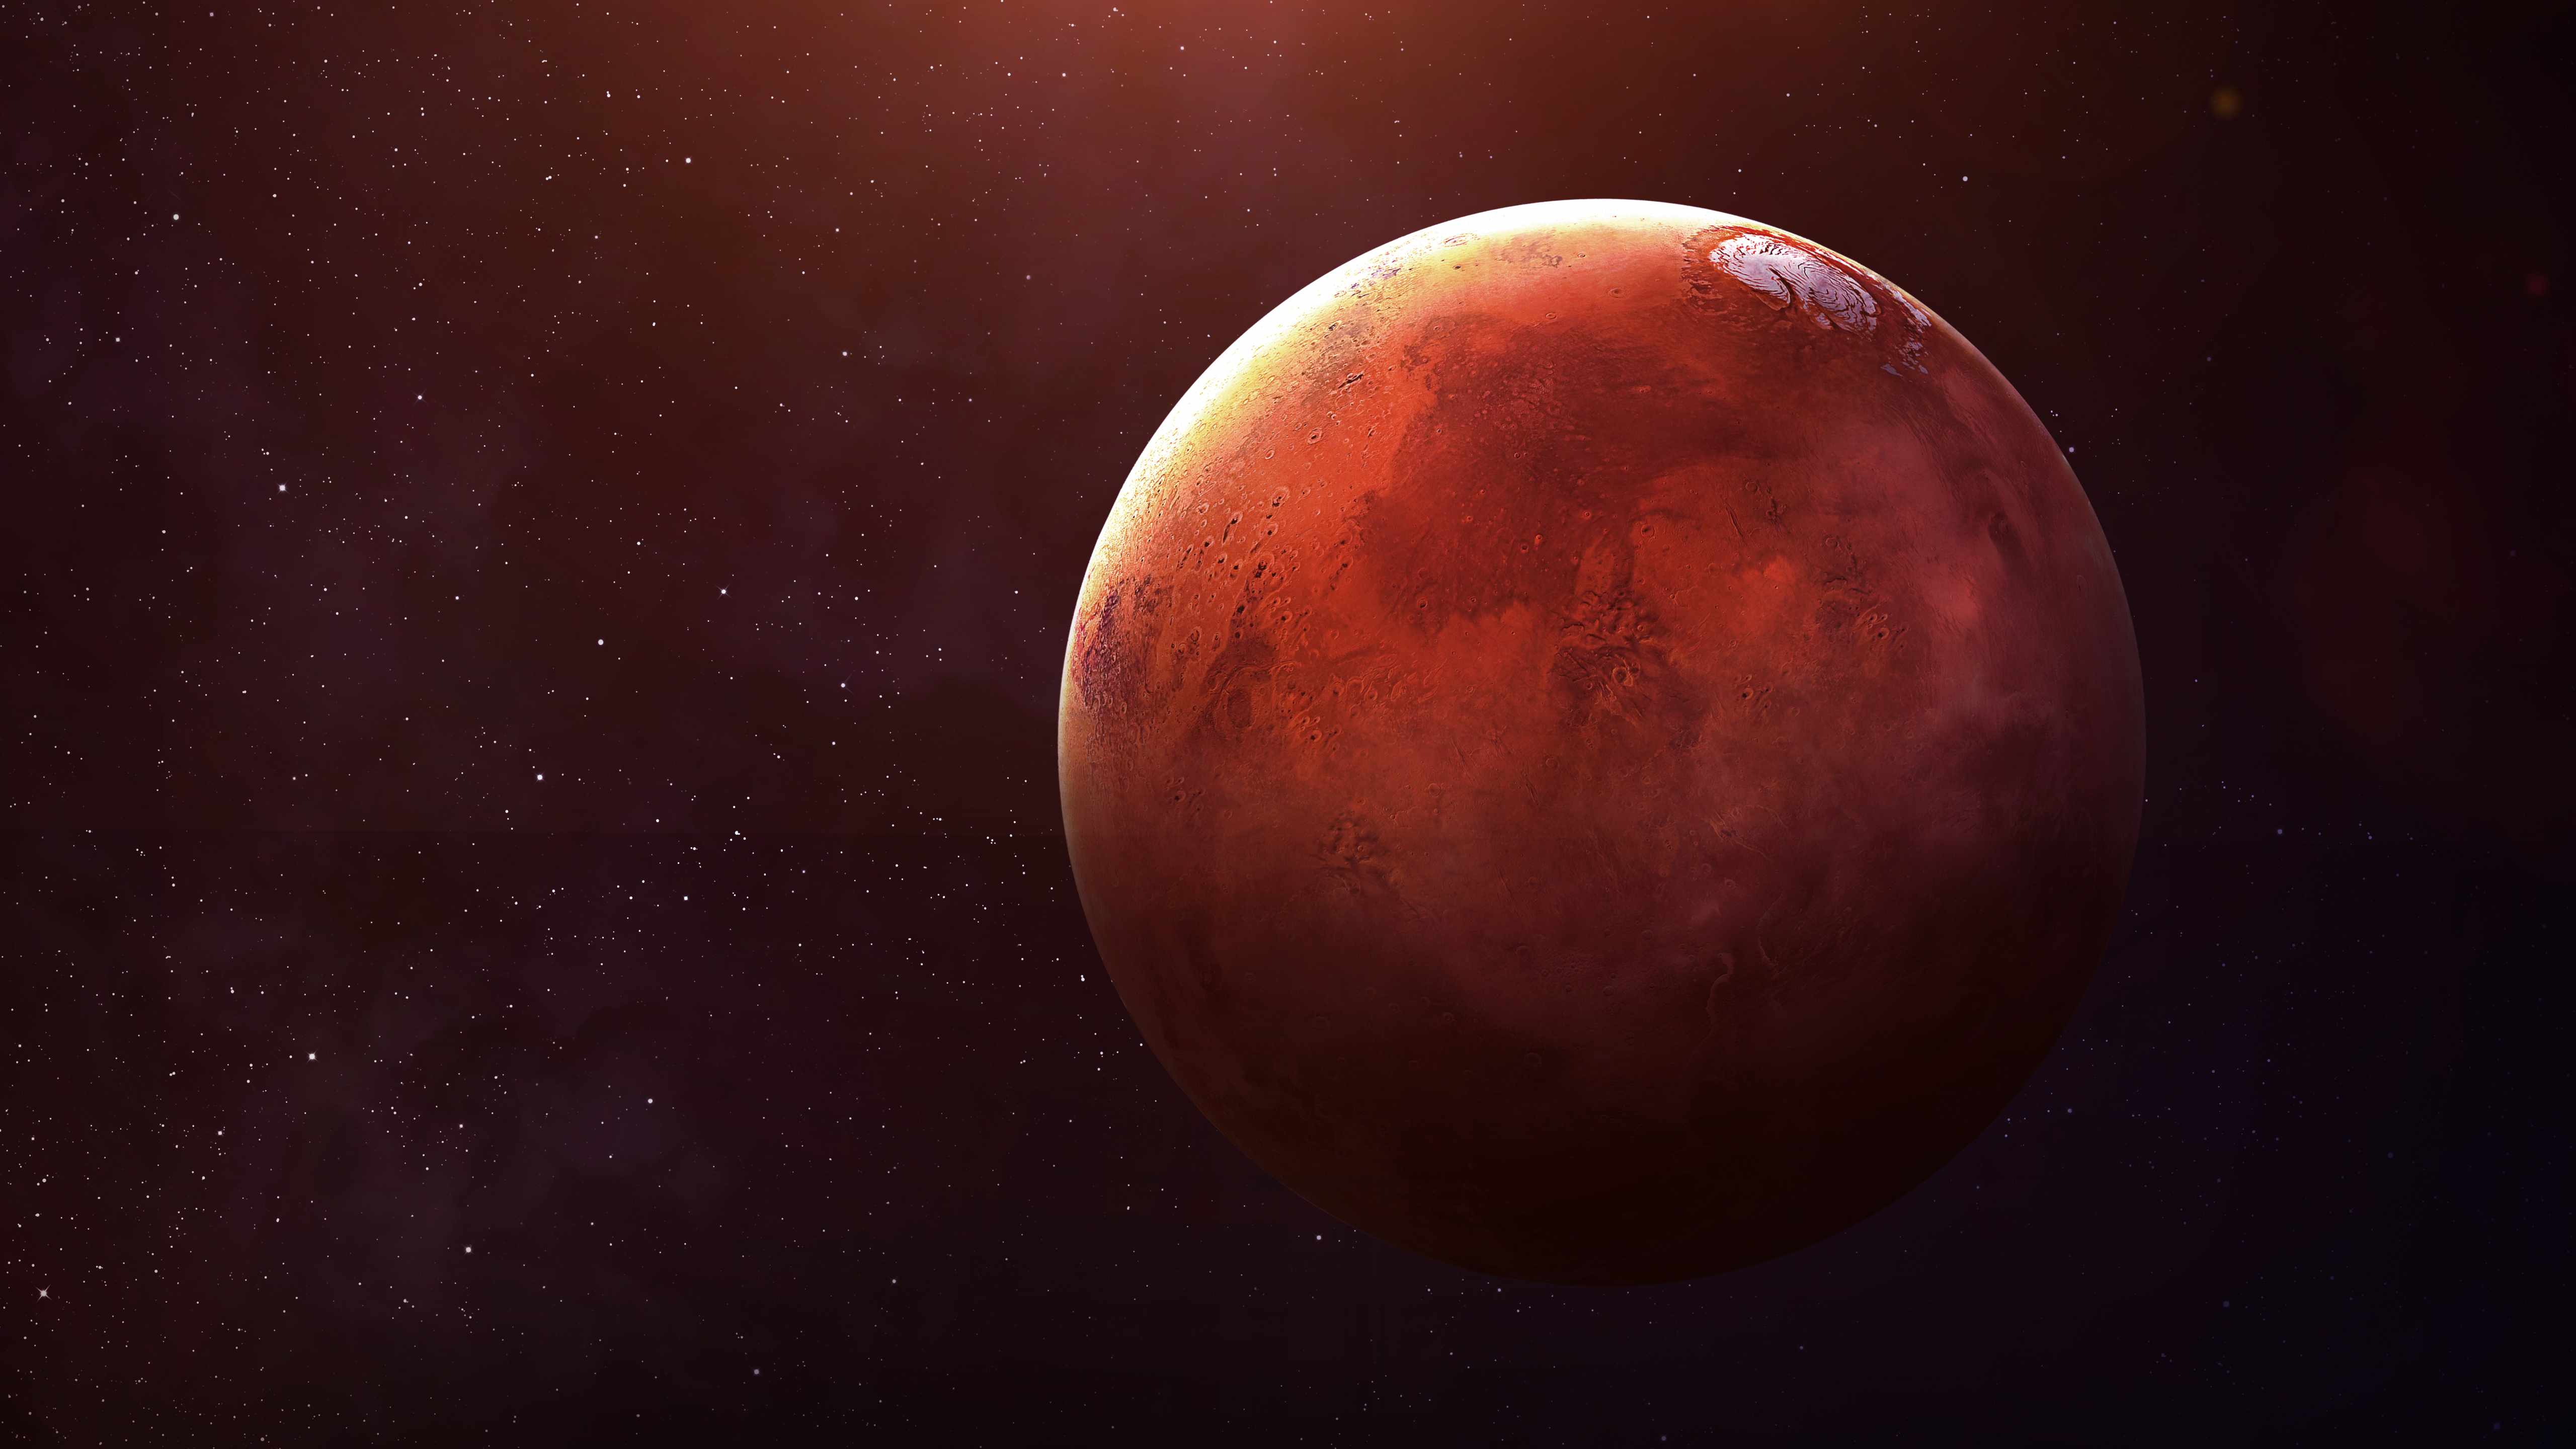 image of planet Mars, red planet